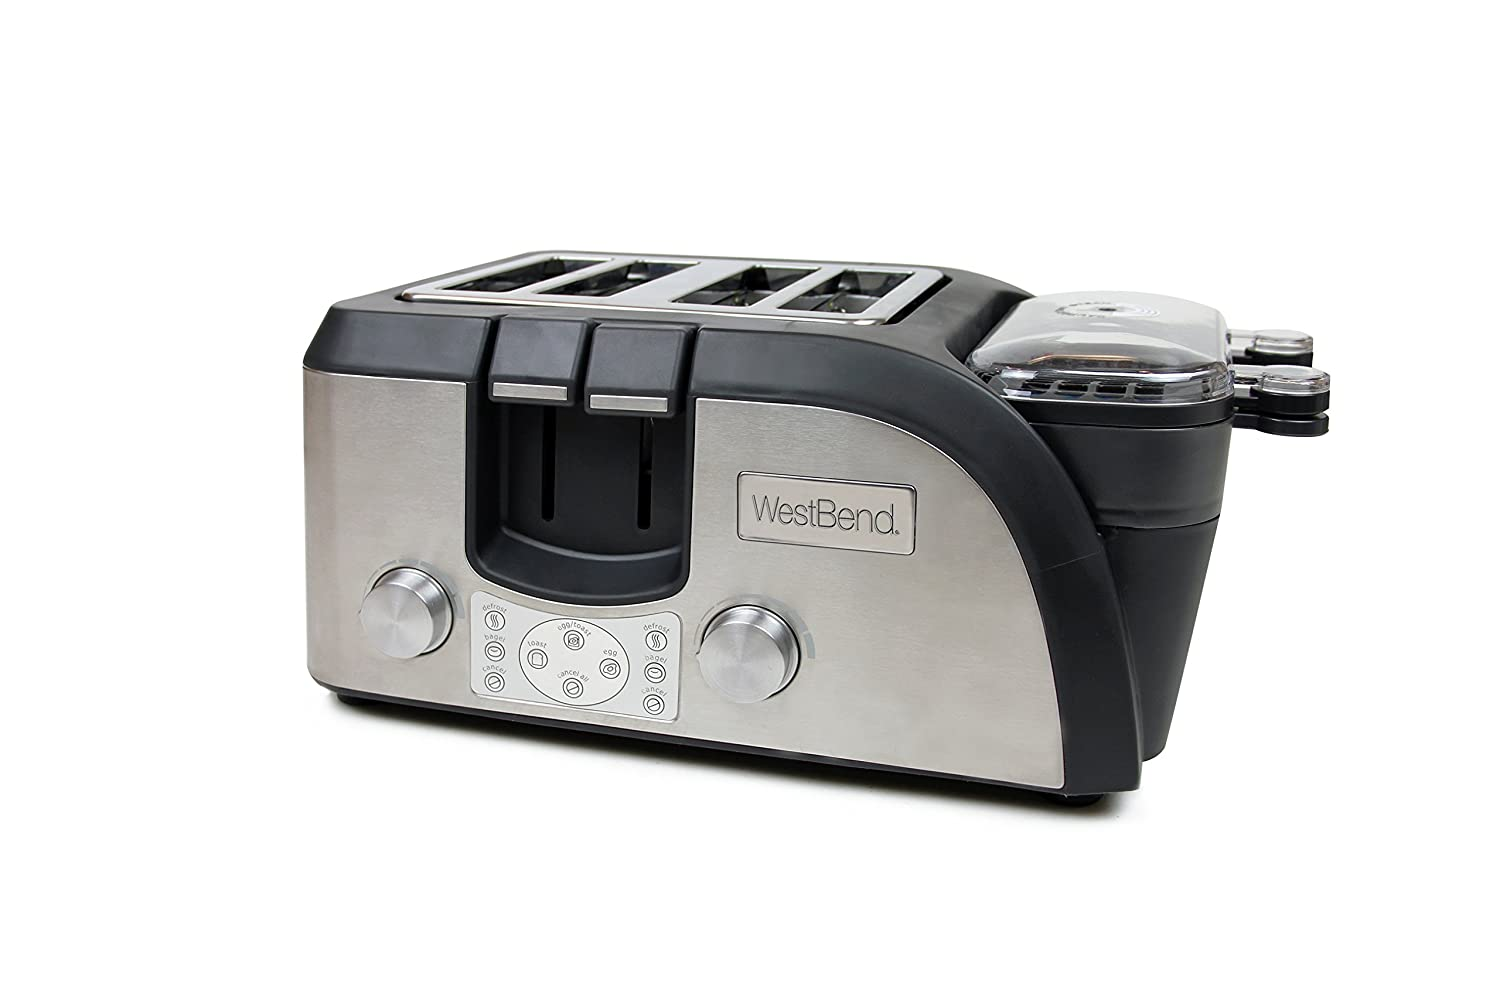 New West Bend TEMPR100 Platinum Breakfast Station Toaster Oven, Silver/Black